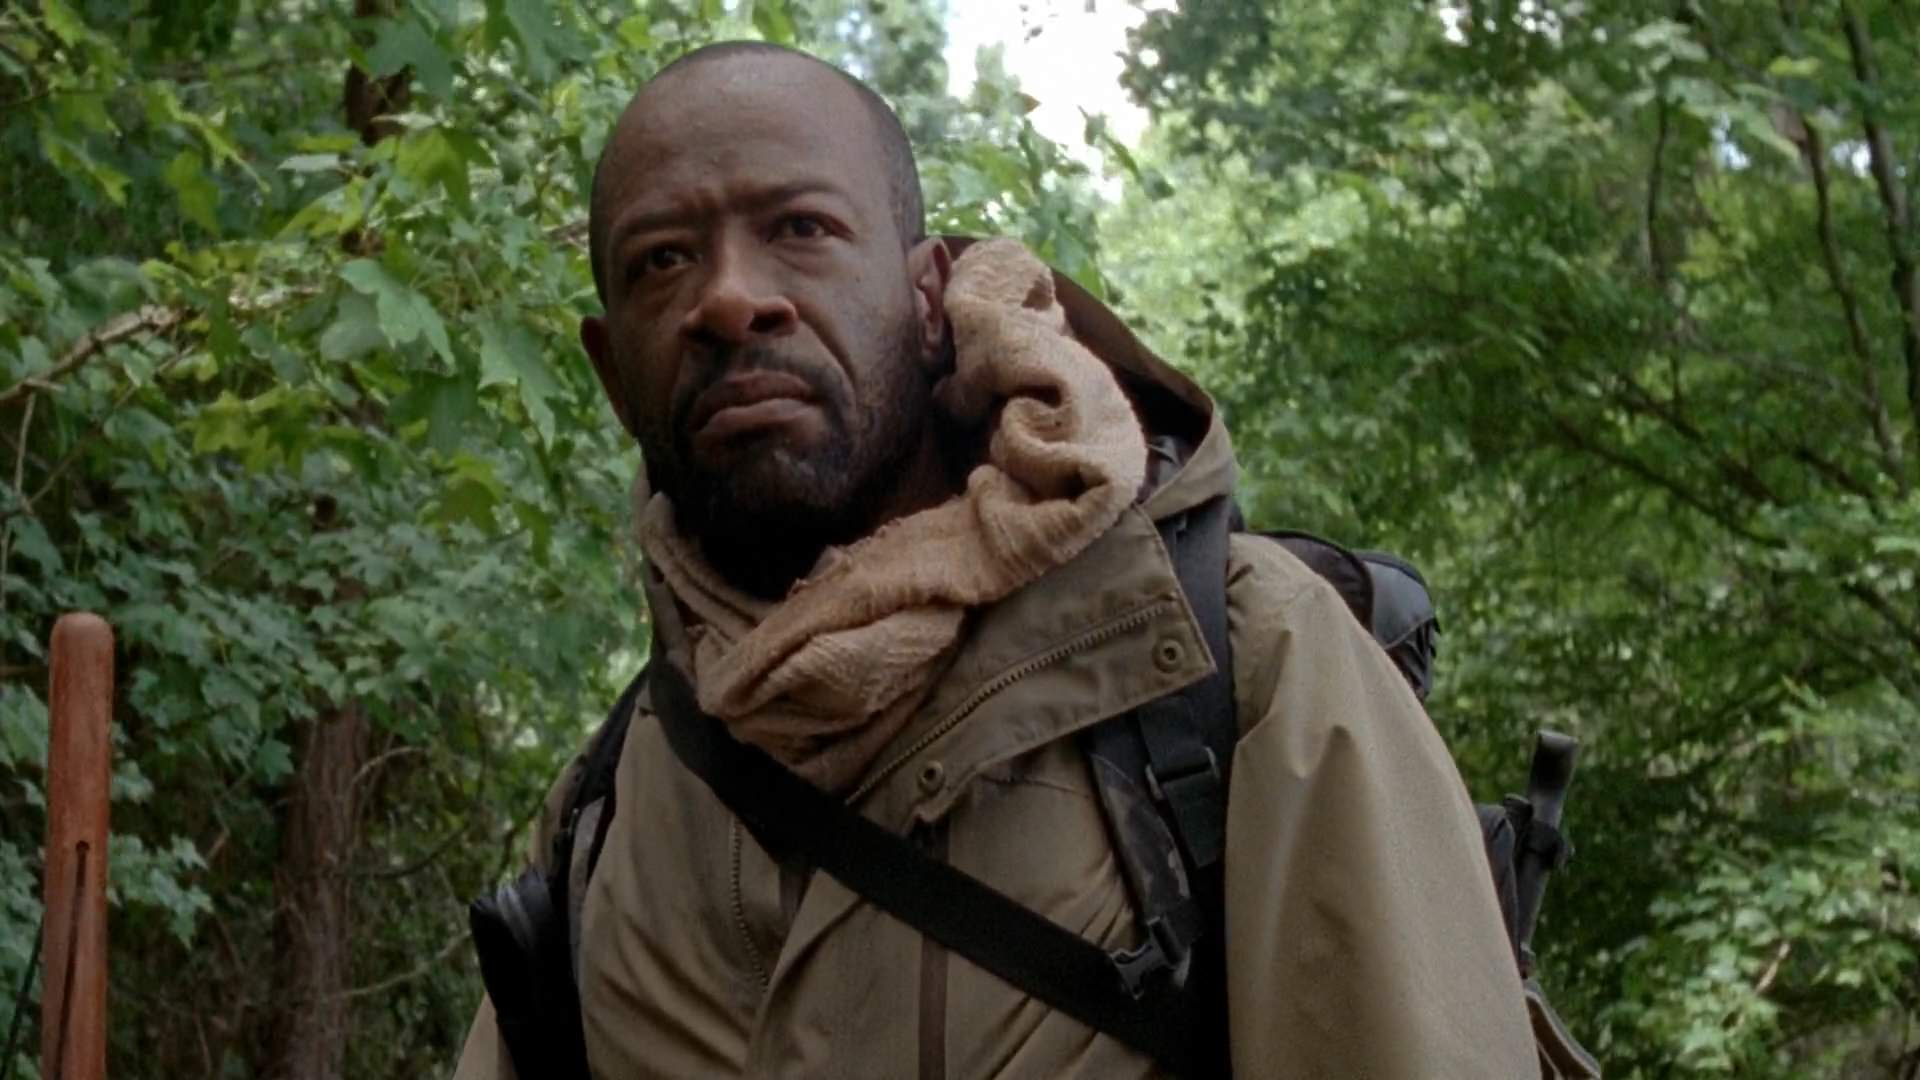 The Walking Dead 8×06 The King, the Widow and Rick preview